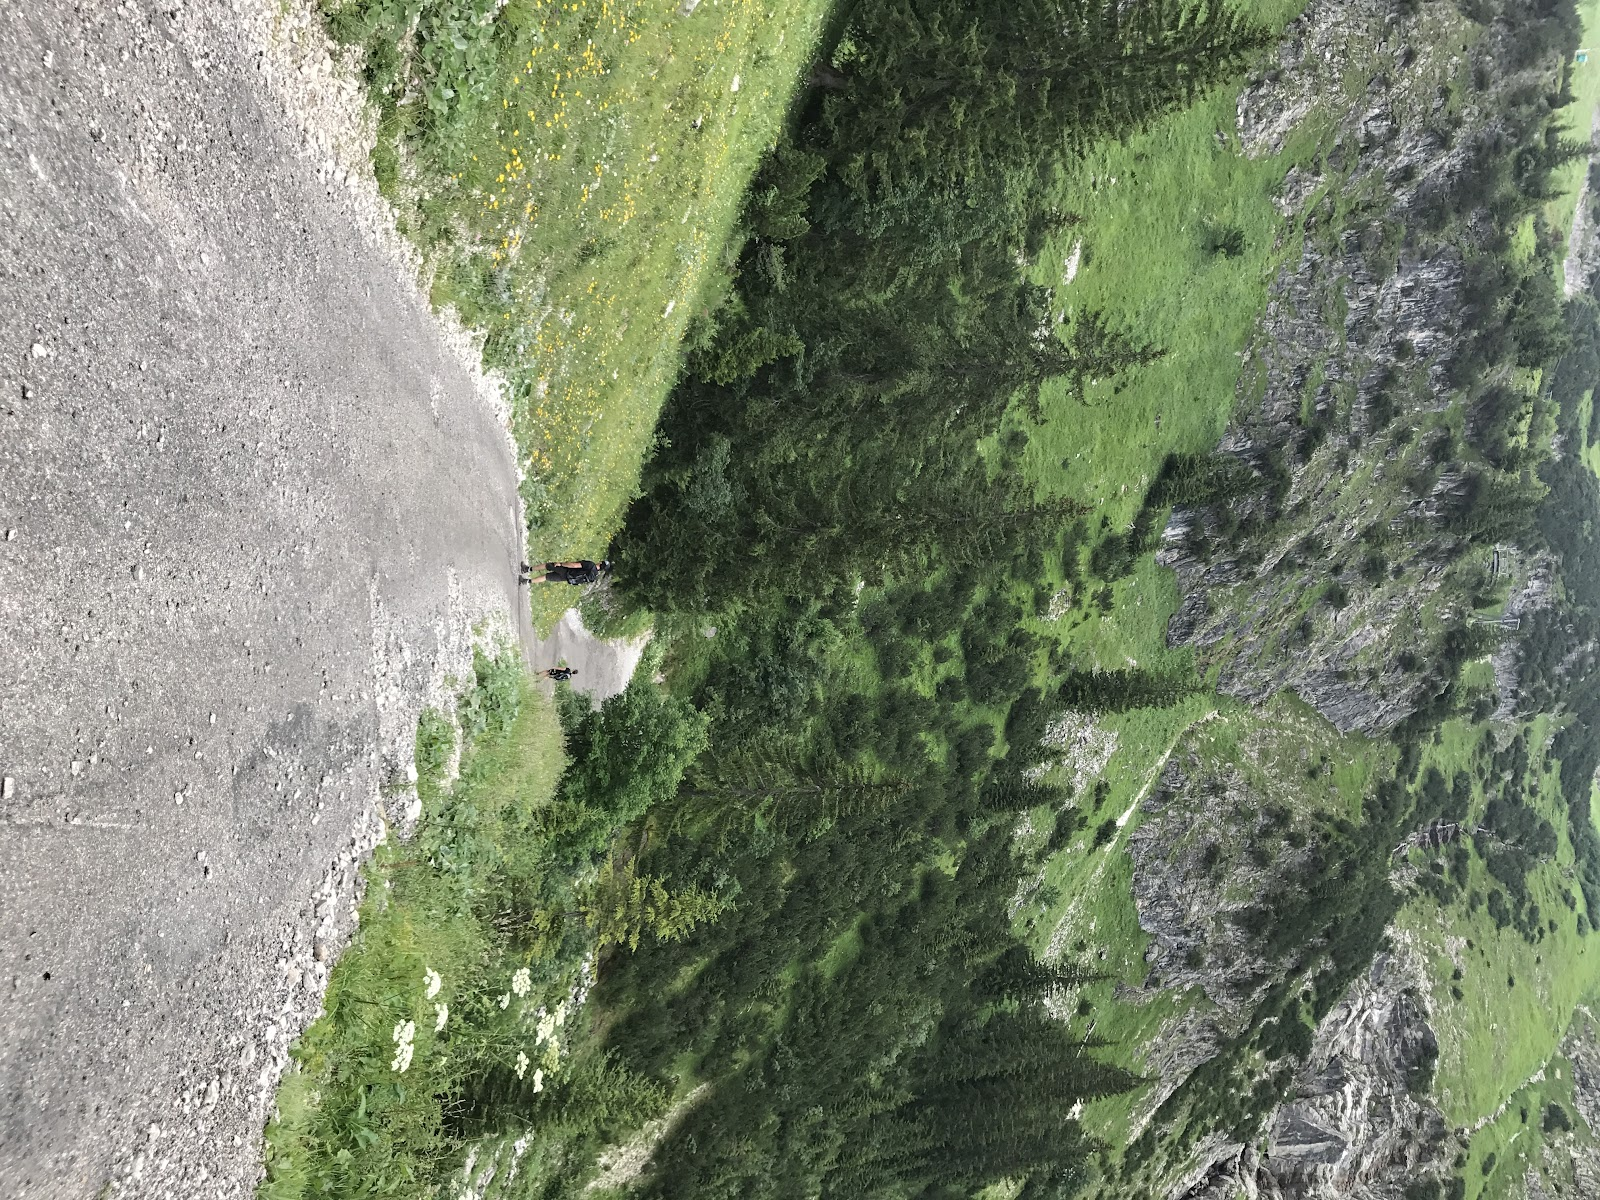 Climbing Nebelhorn by bicycle - hiker walking down steep road